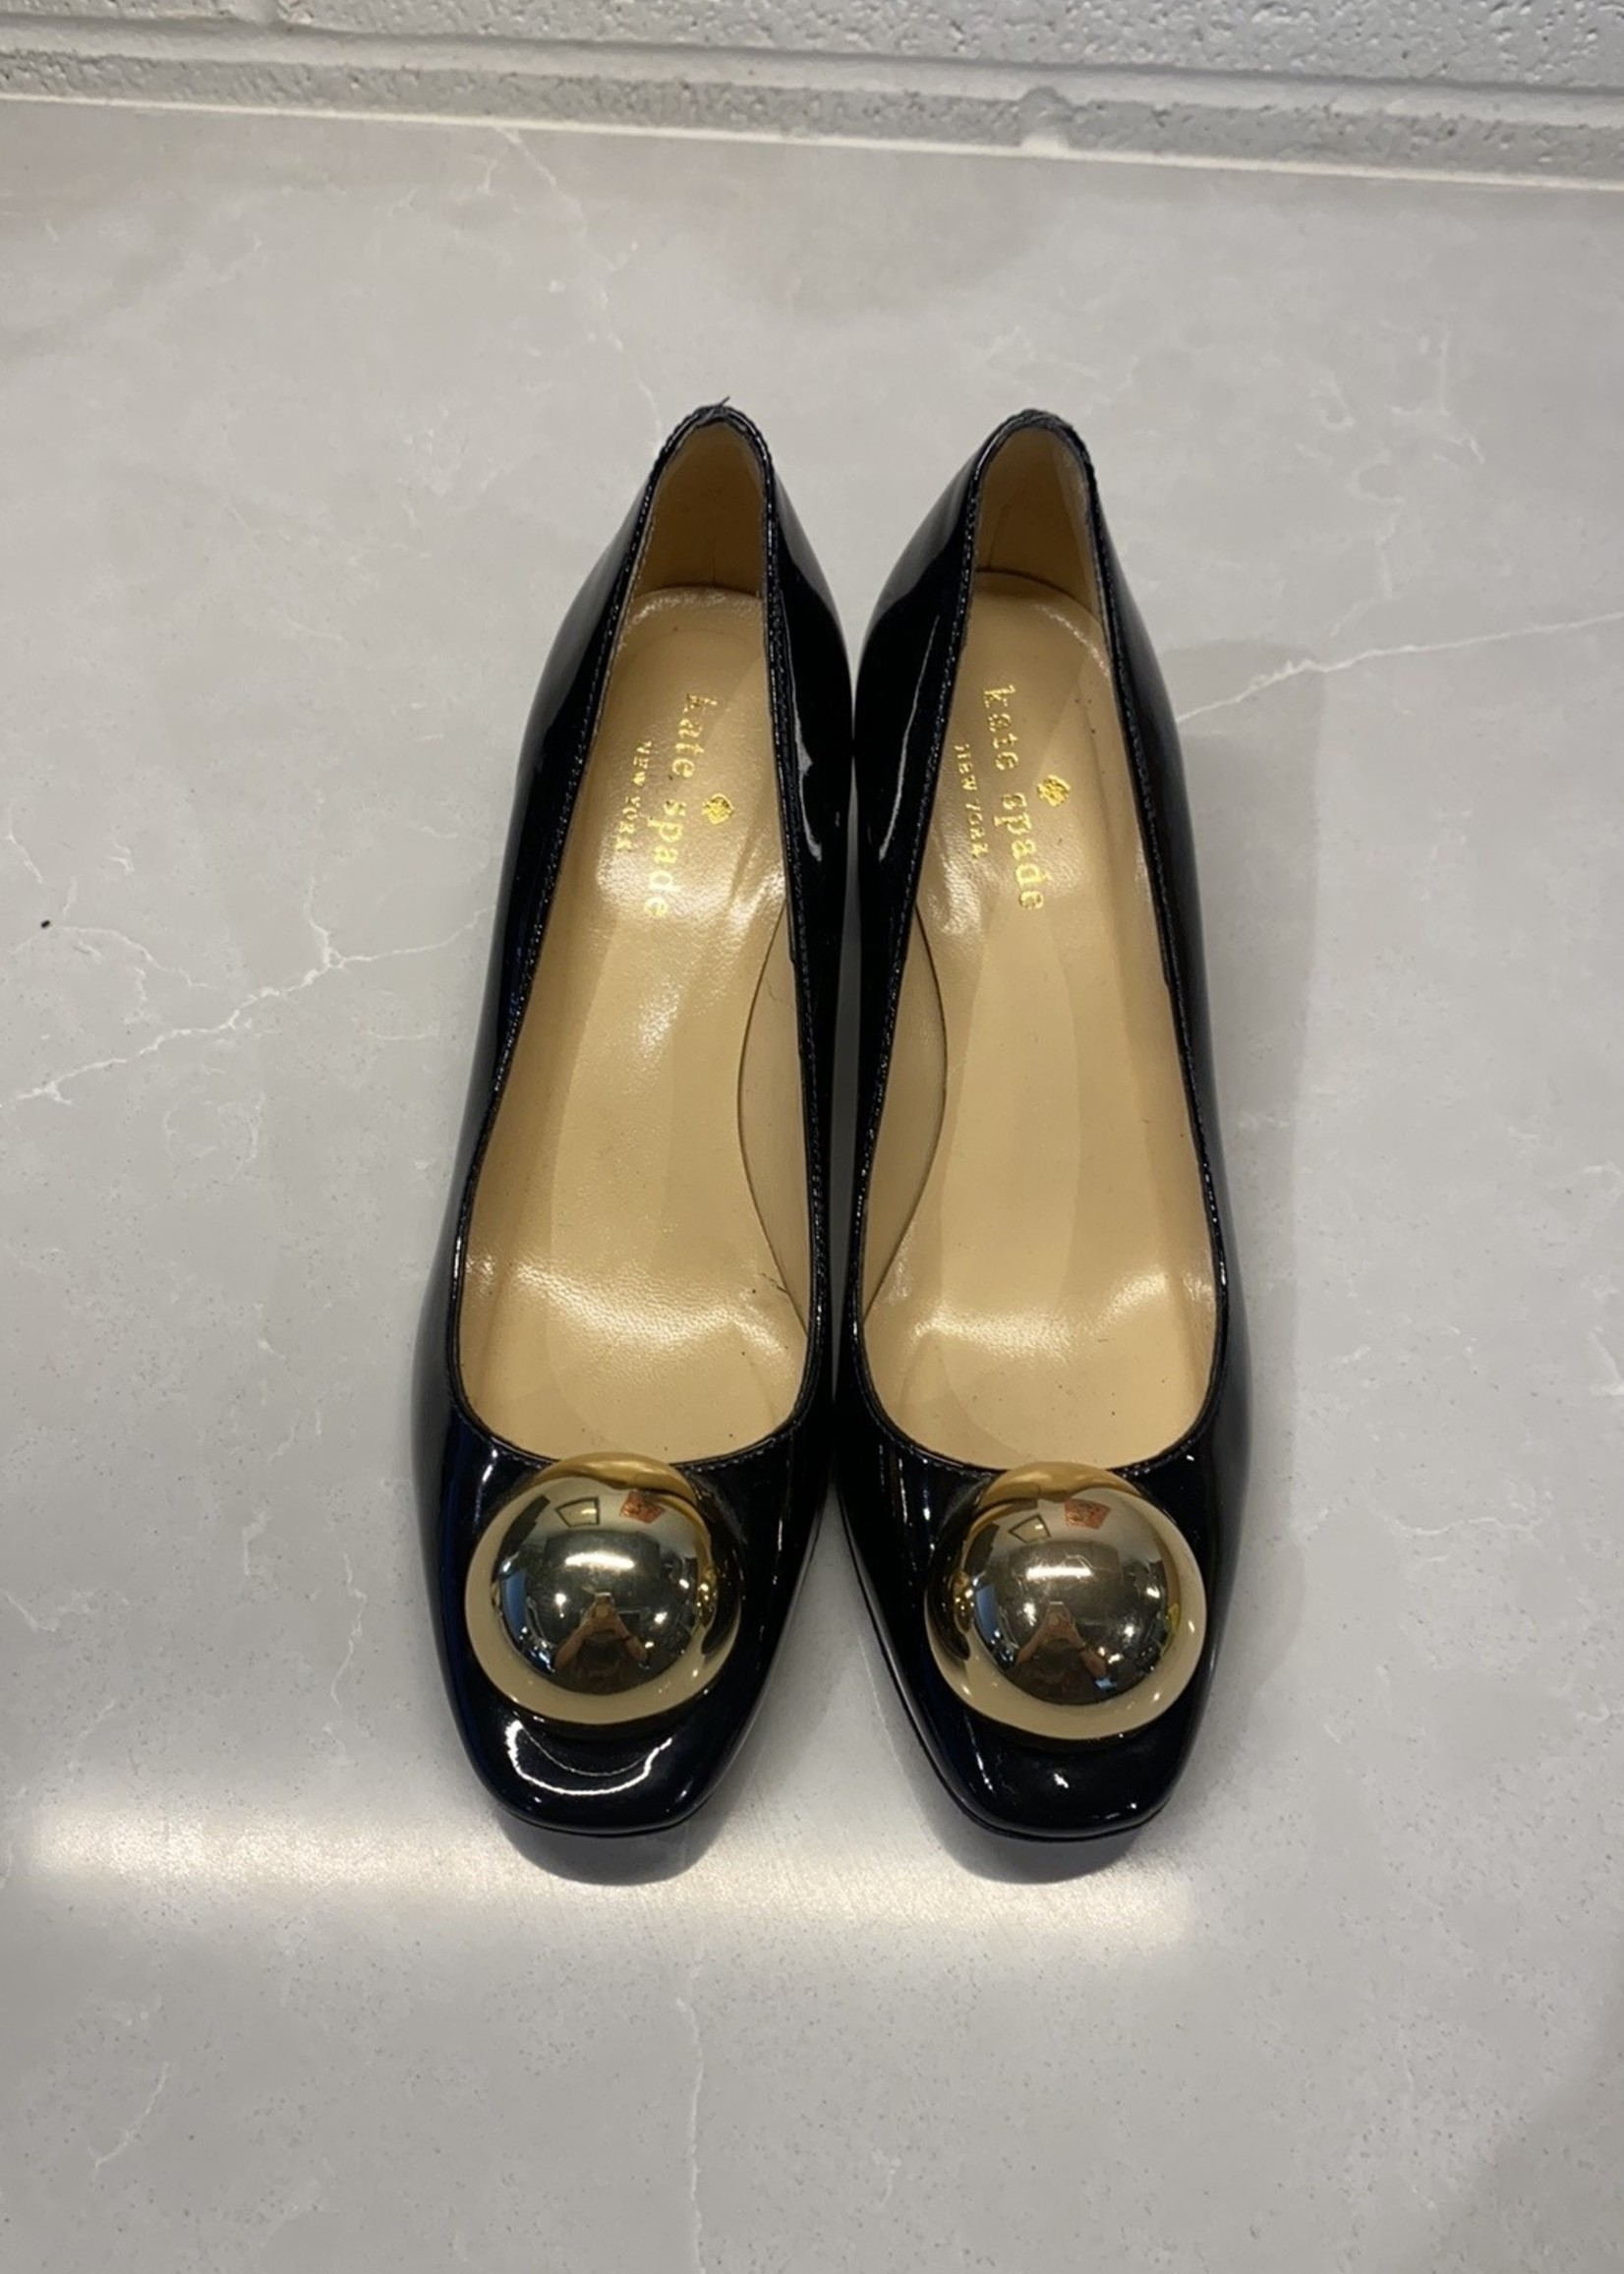 Kate Spade Black Heels with Gold Ball Toe 5.5